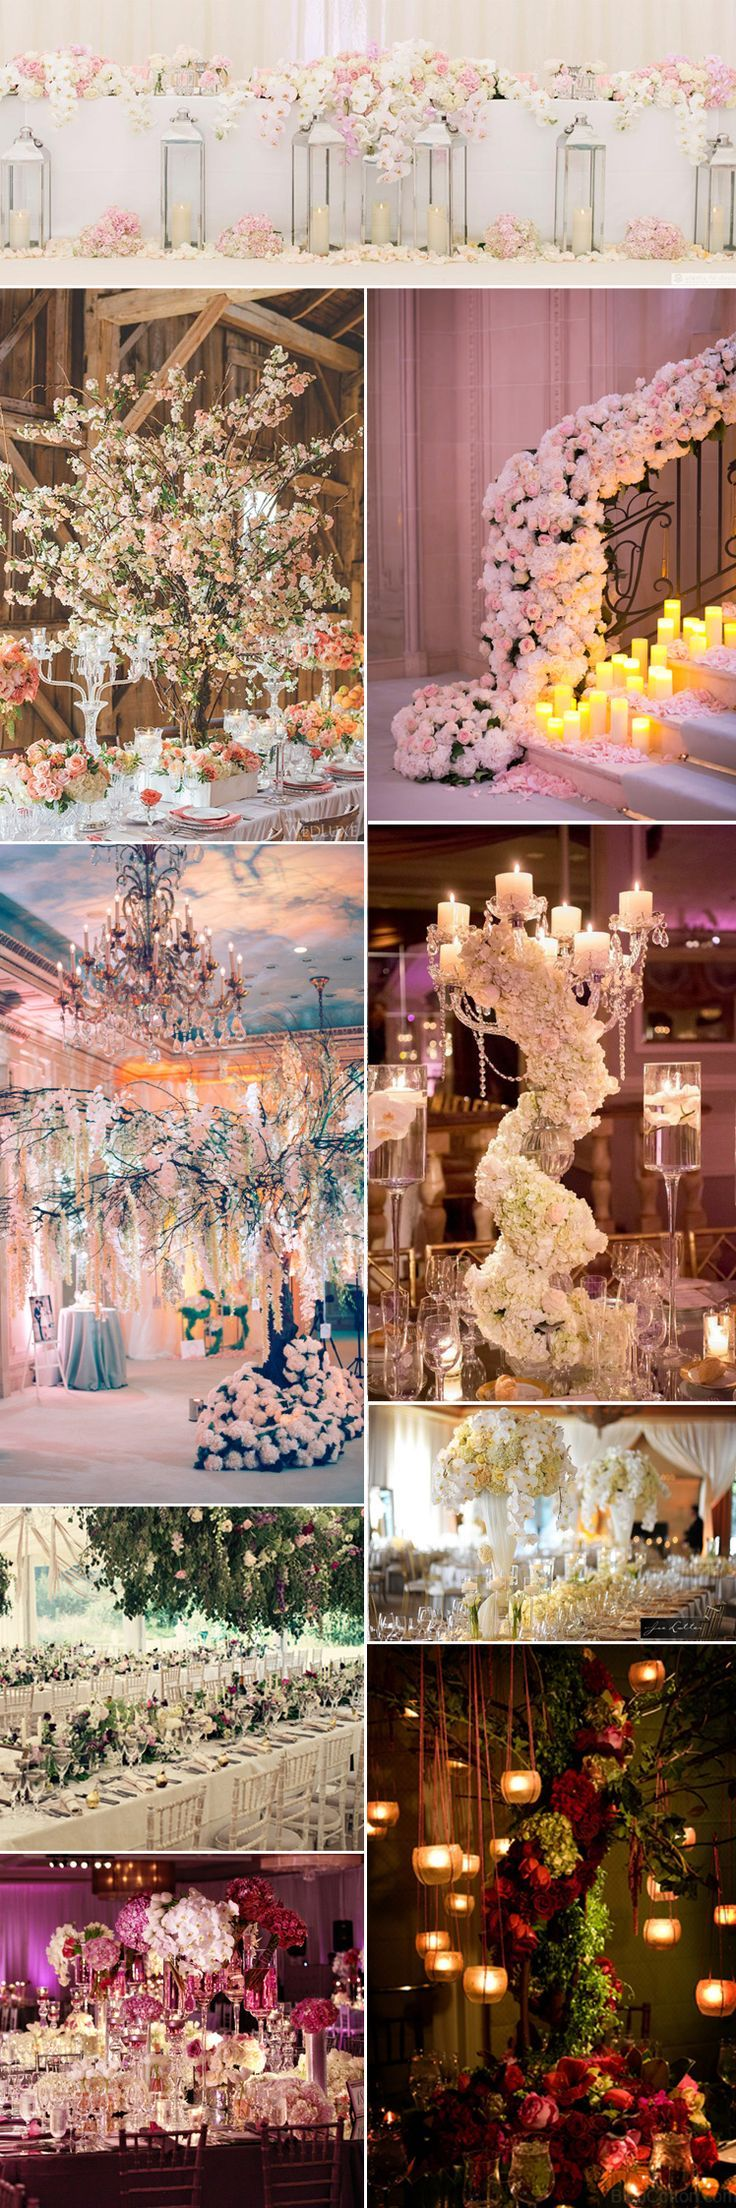 Extravagant wedding decor ideas on GS Inspiration - Glitzy Secrets